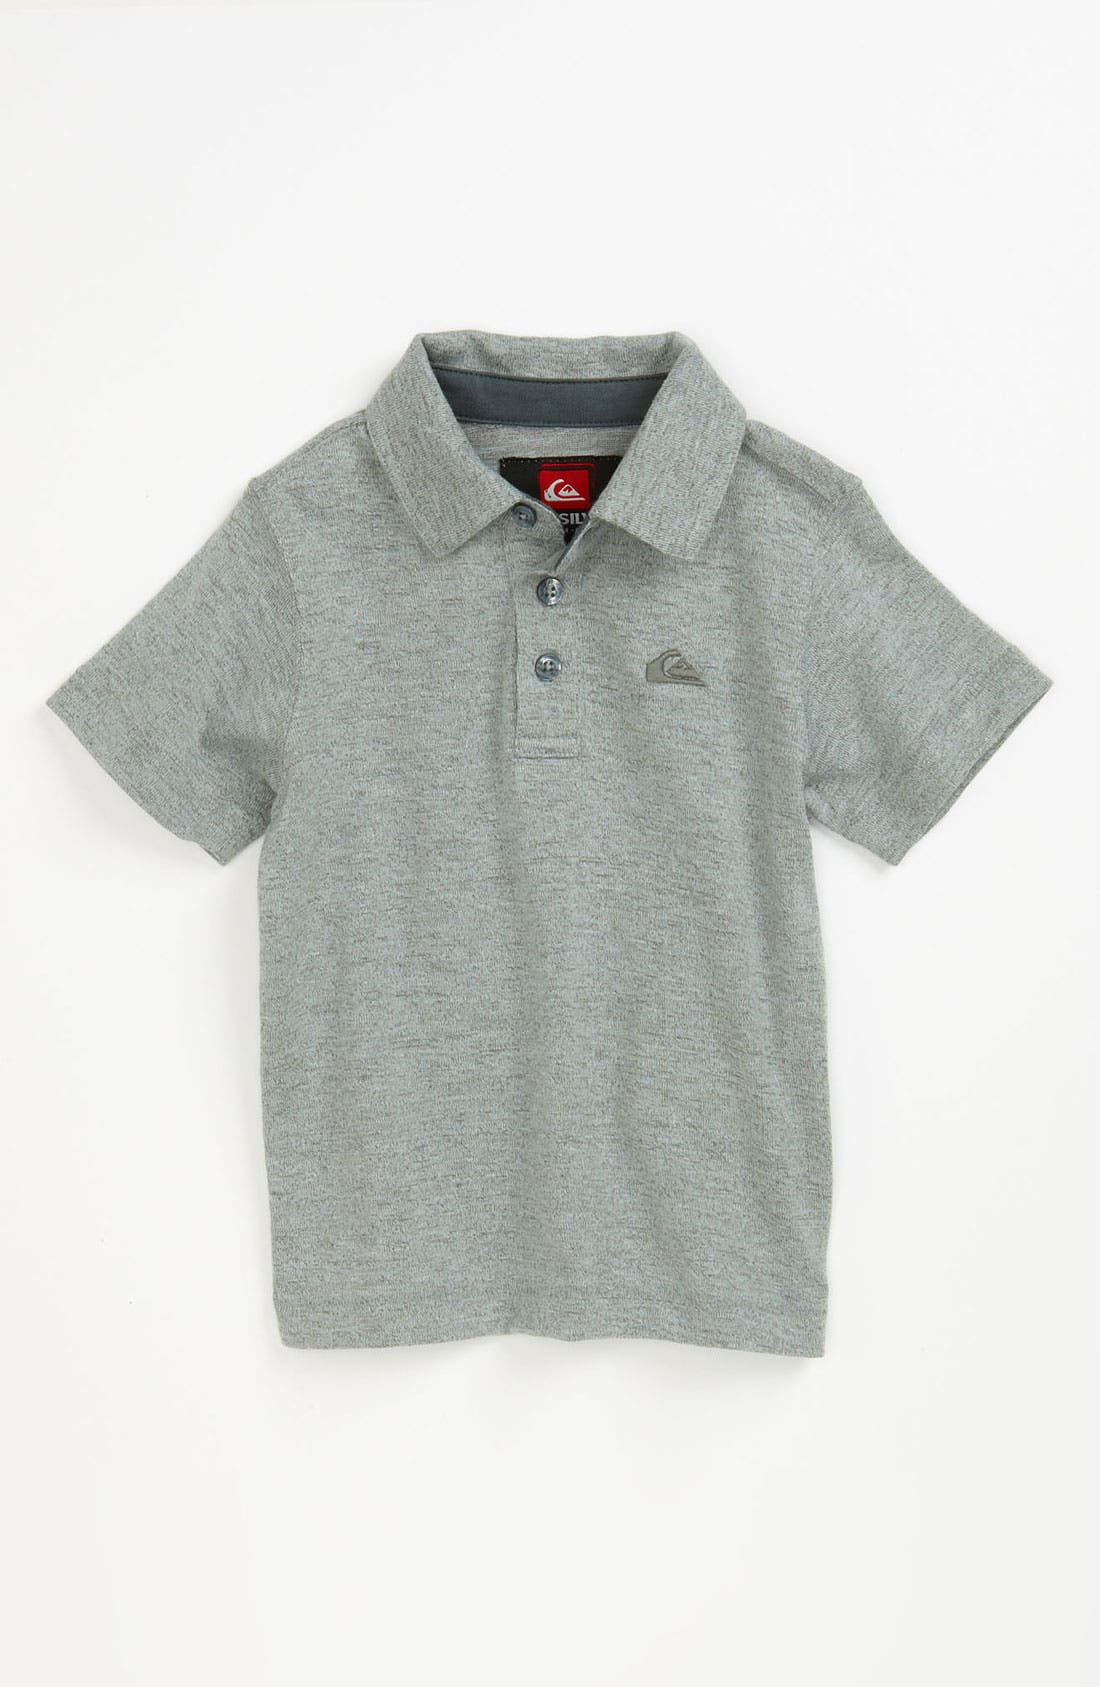 Alternate Image 1 Selected - Quiksilver 'Grab Bag' Polo Shirt (Baby)